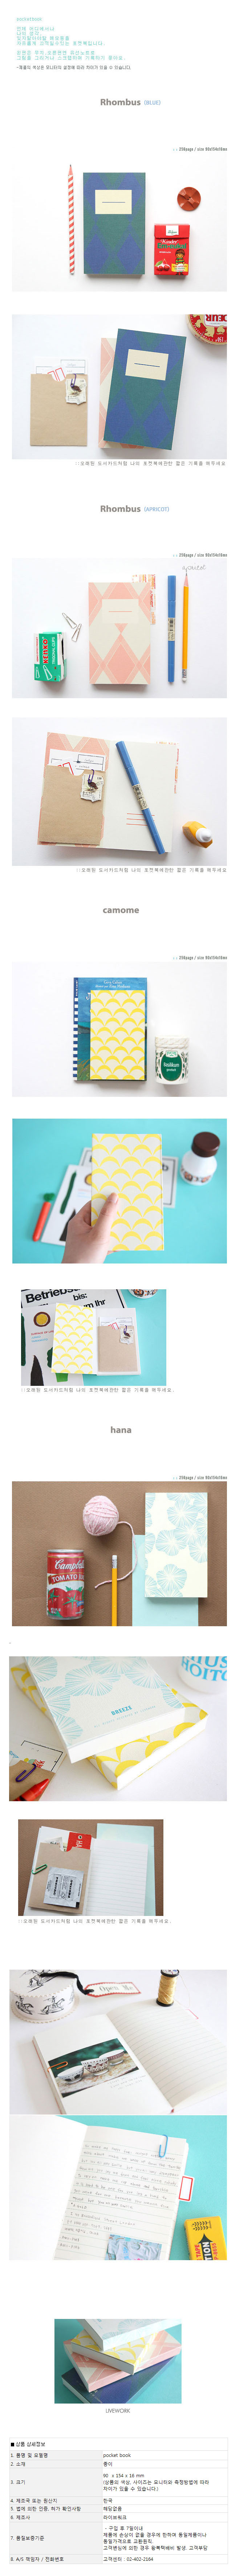 pocket book - camome